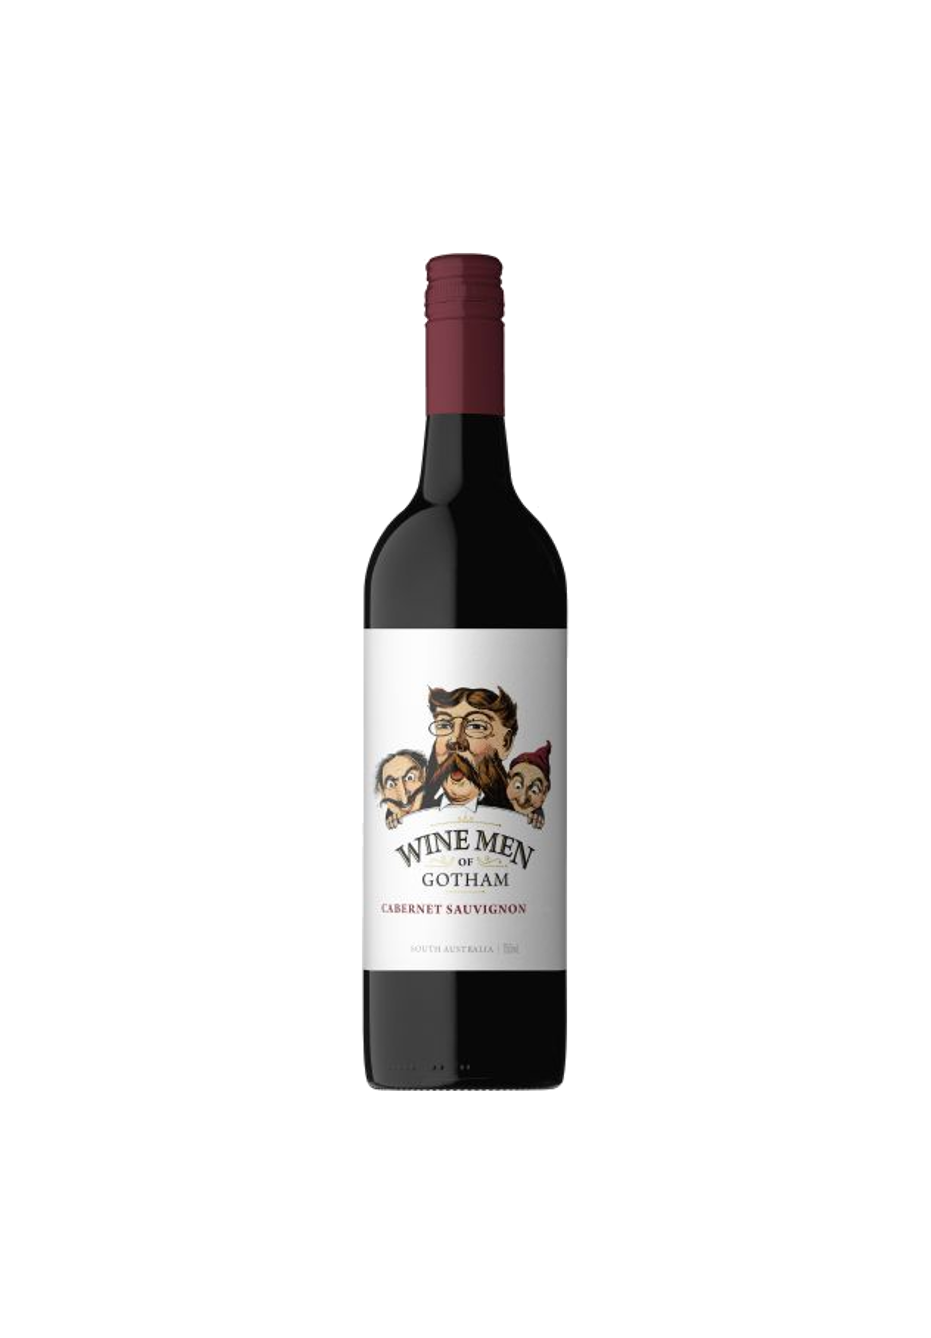 Wine Men Of Gotham South Australian Cabernet Sauvignon 2016